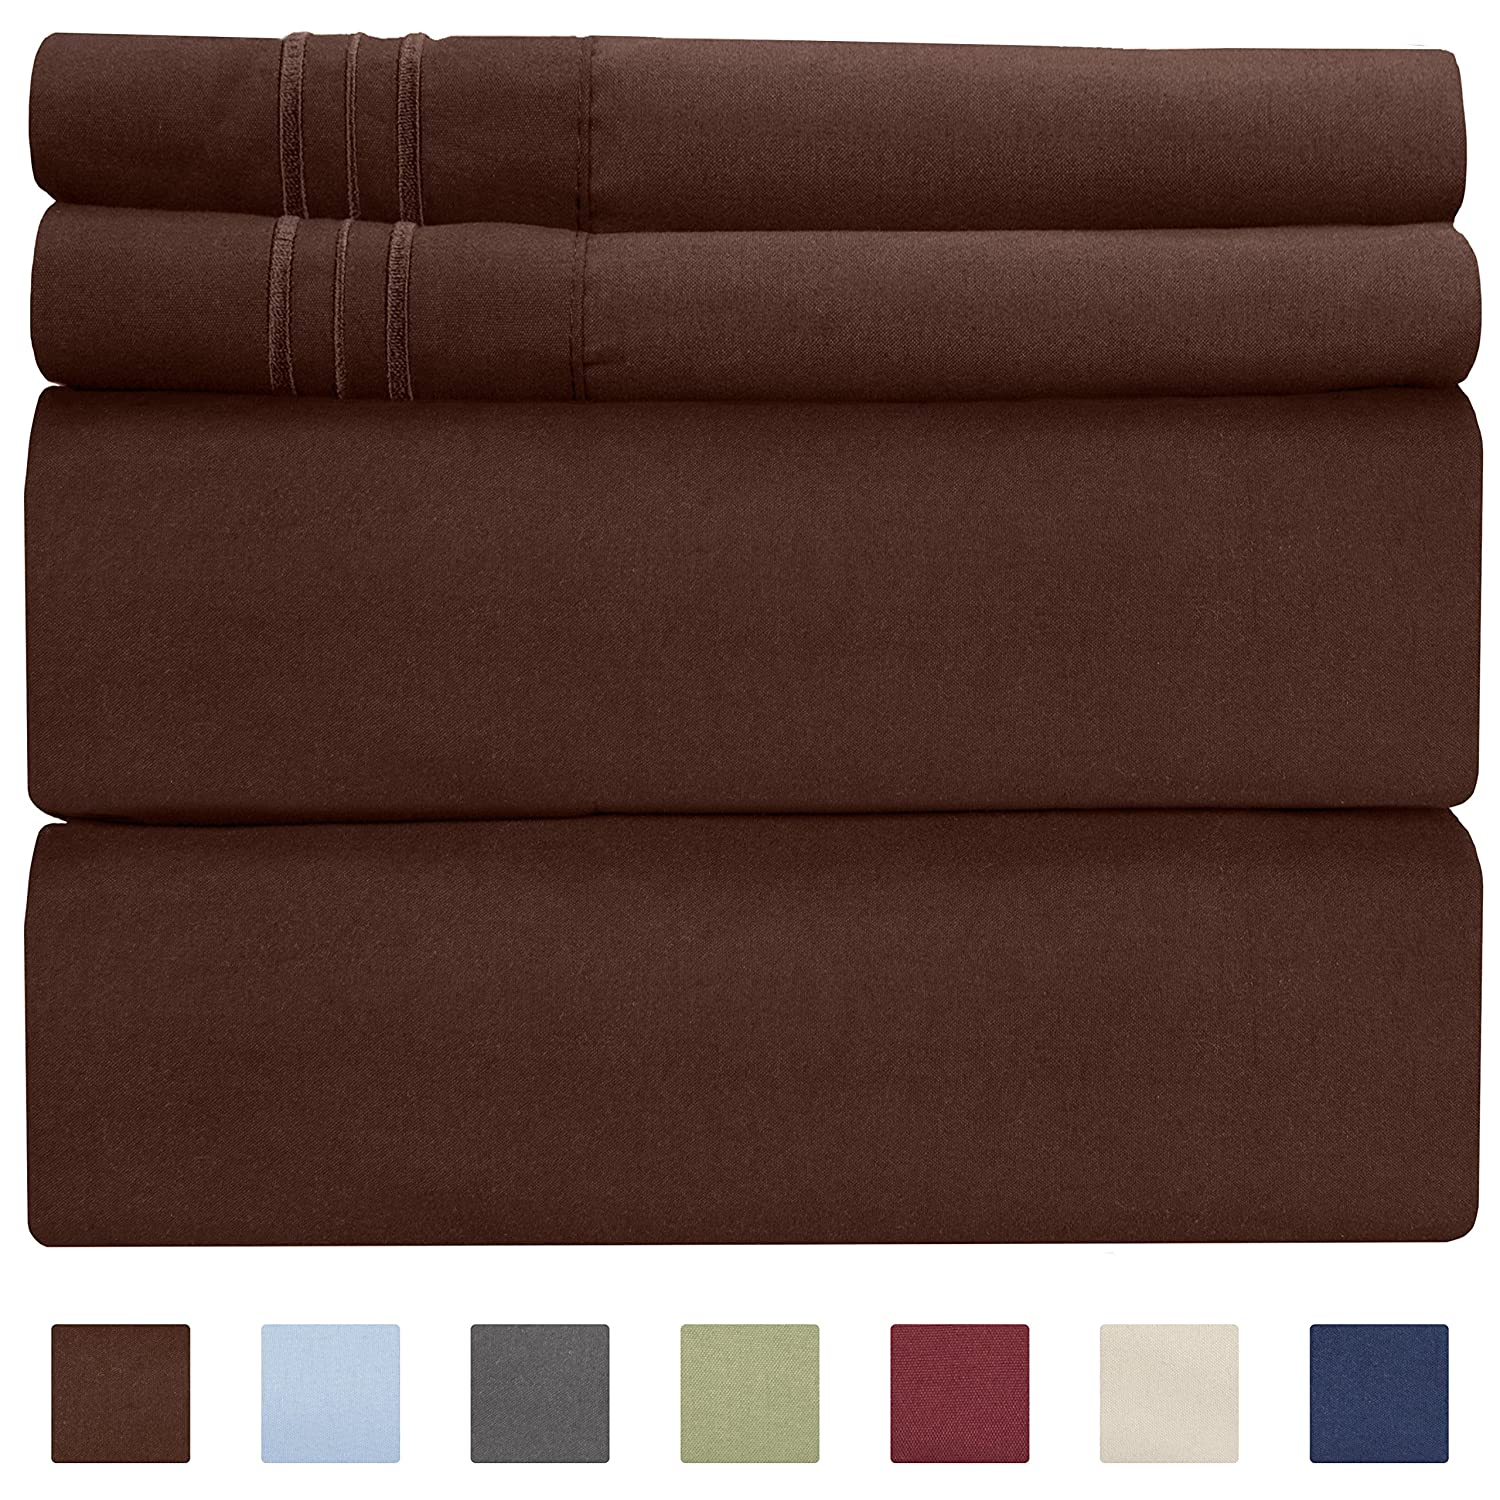 Queen Size Sheet Set - 4 Piece Set - Hotel Luxury Bed Sheets - Extra Soft - Deep Pockets - Easy Fit - Breathable & Cooling - Wrinkle Free - Comfy – Brown Chocolate Bed Sheets - Queens 4 PC